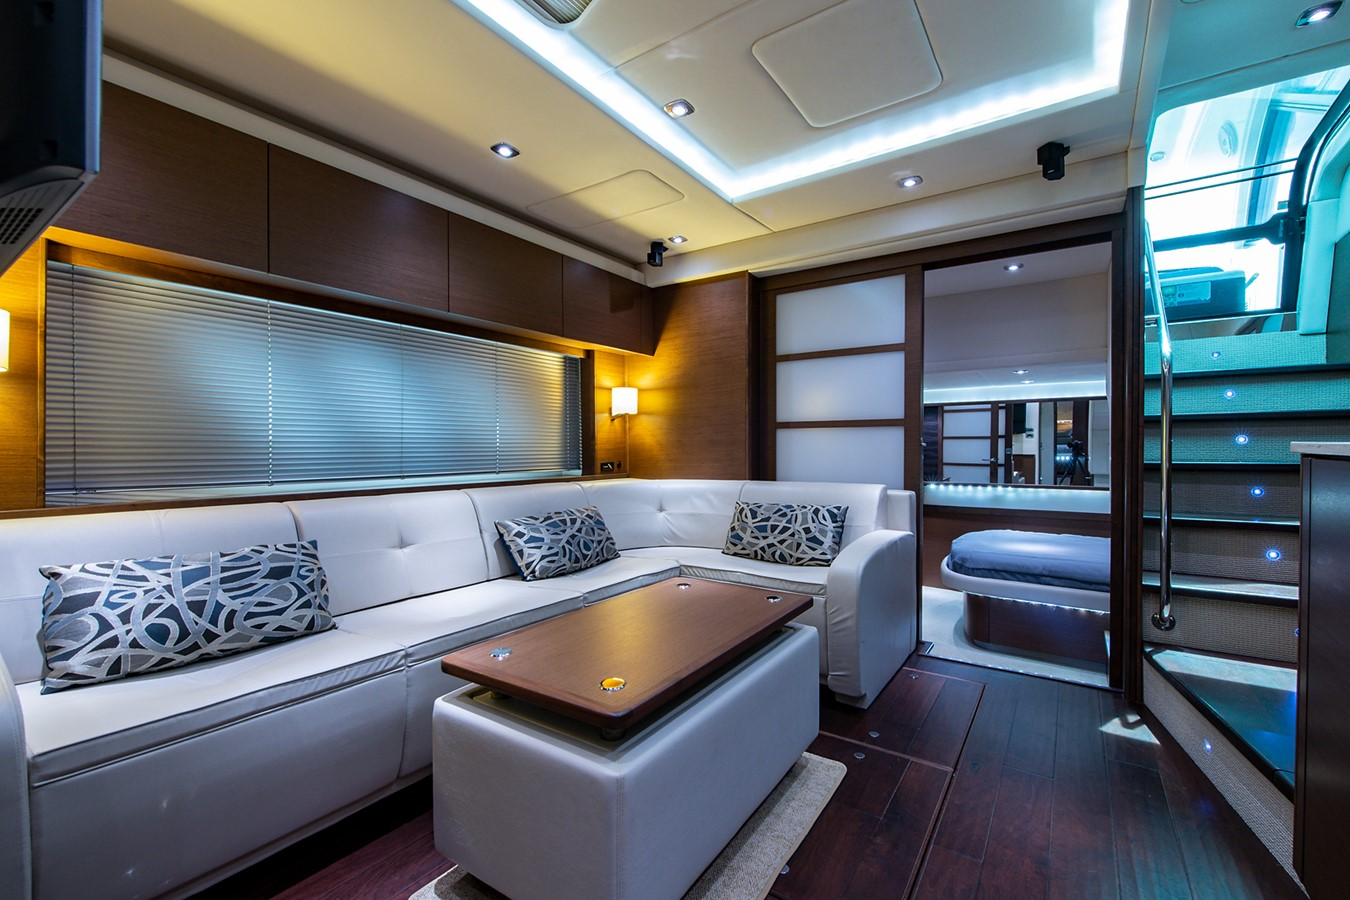 2013 SEA RAY Sundancer Motor Yacht 2531189